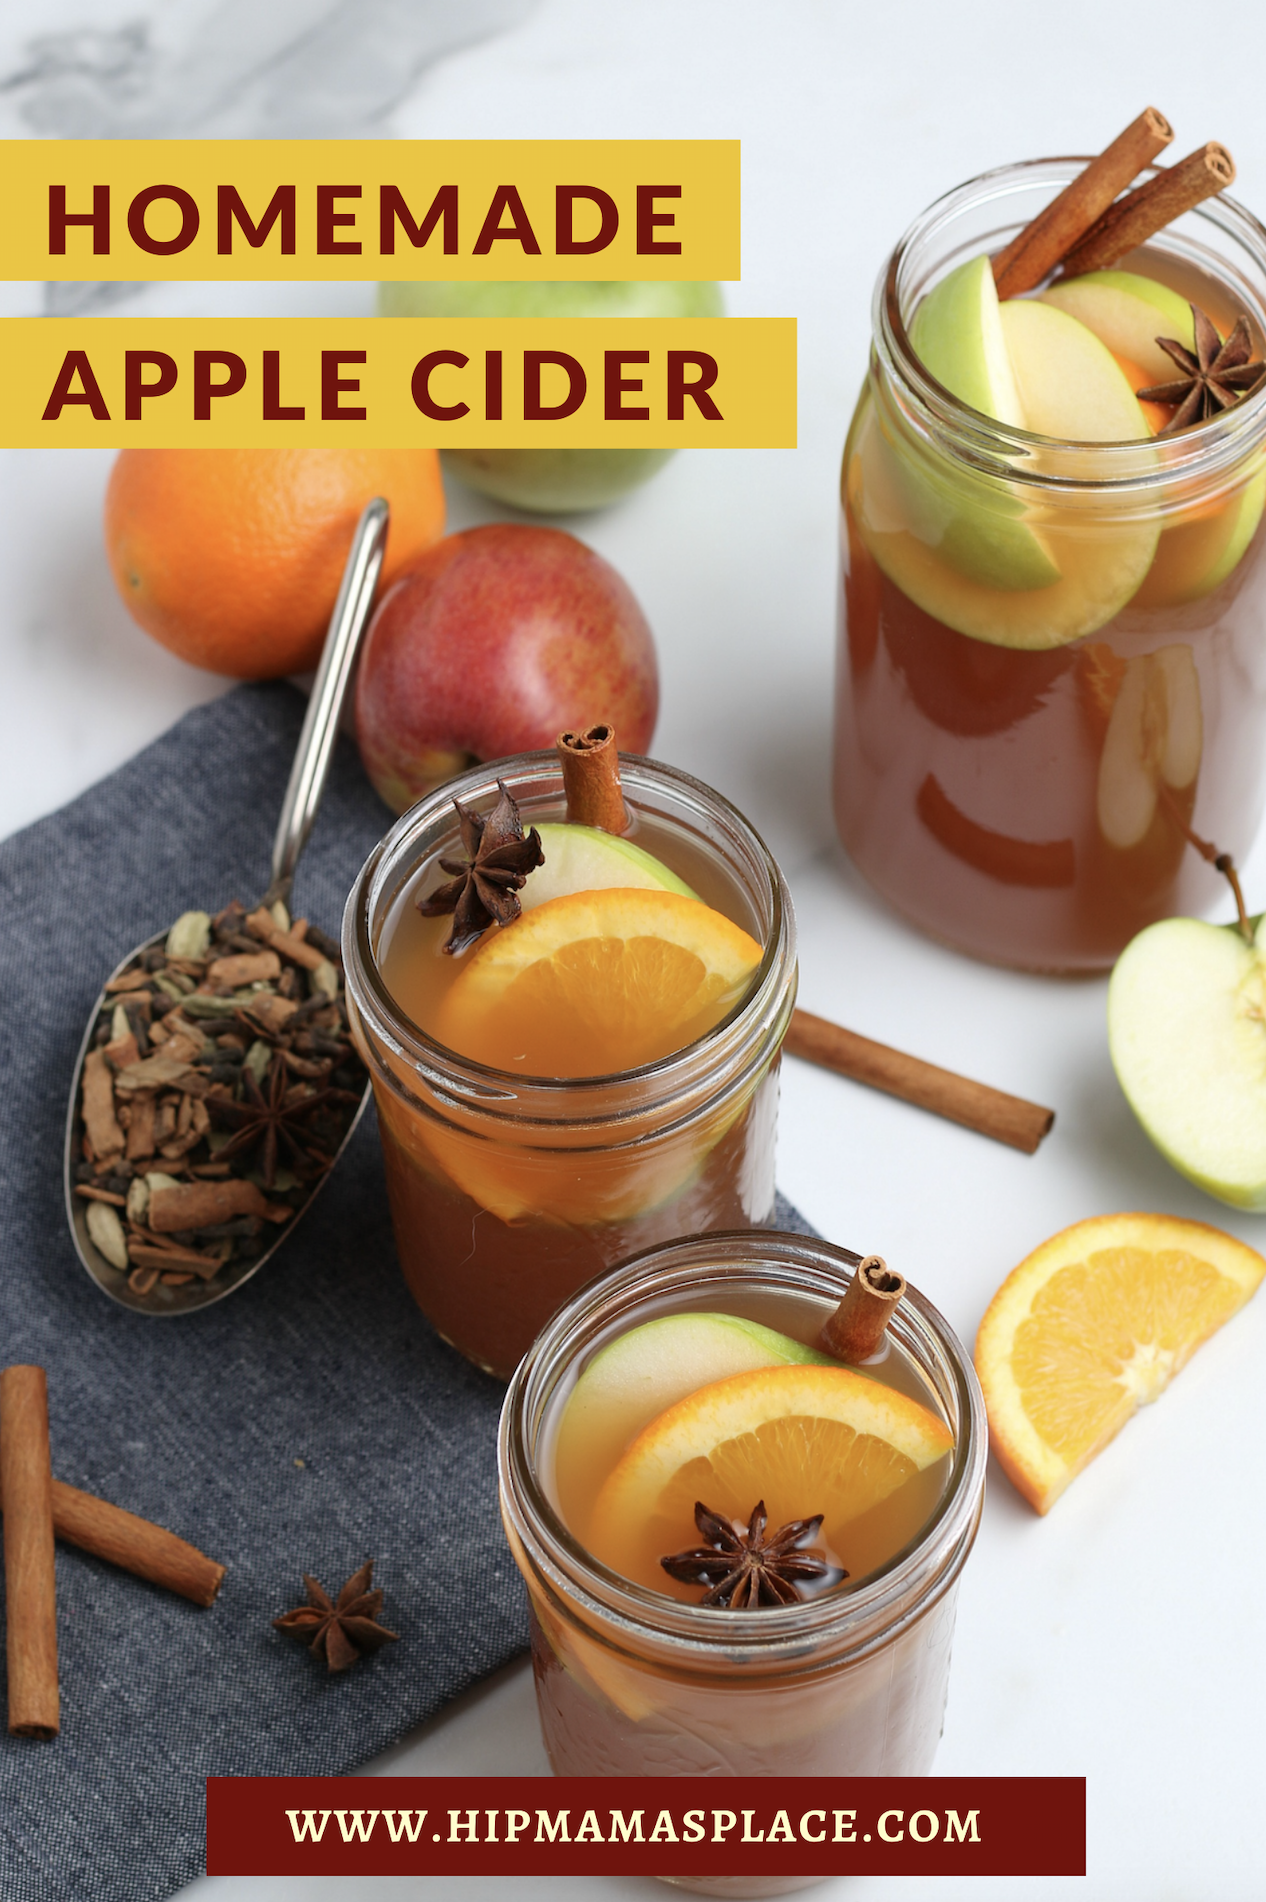 Here's your recipe for easy, comforting and delicious homemade apple cider!